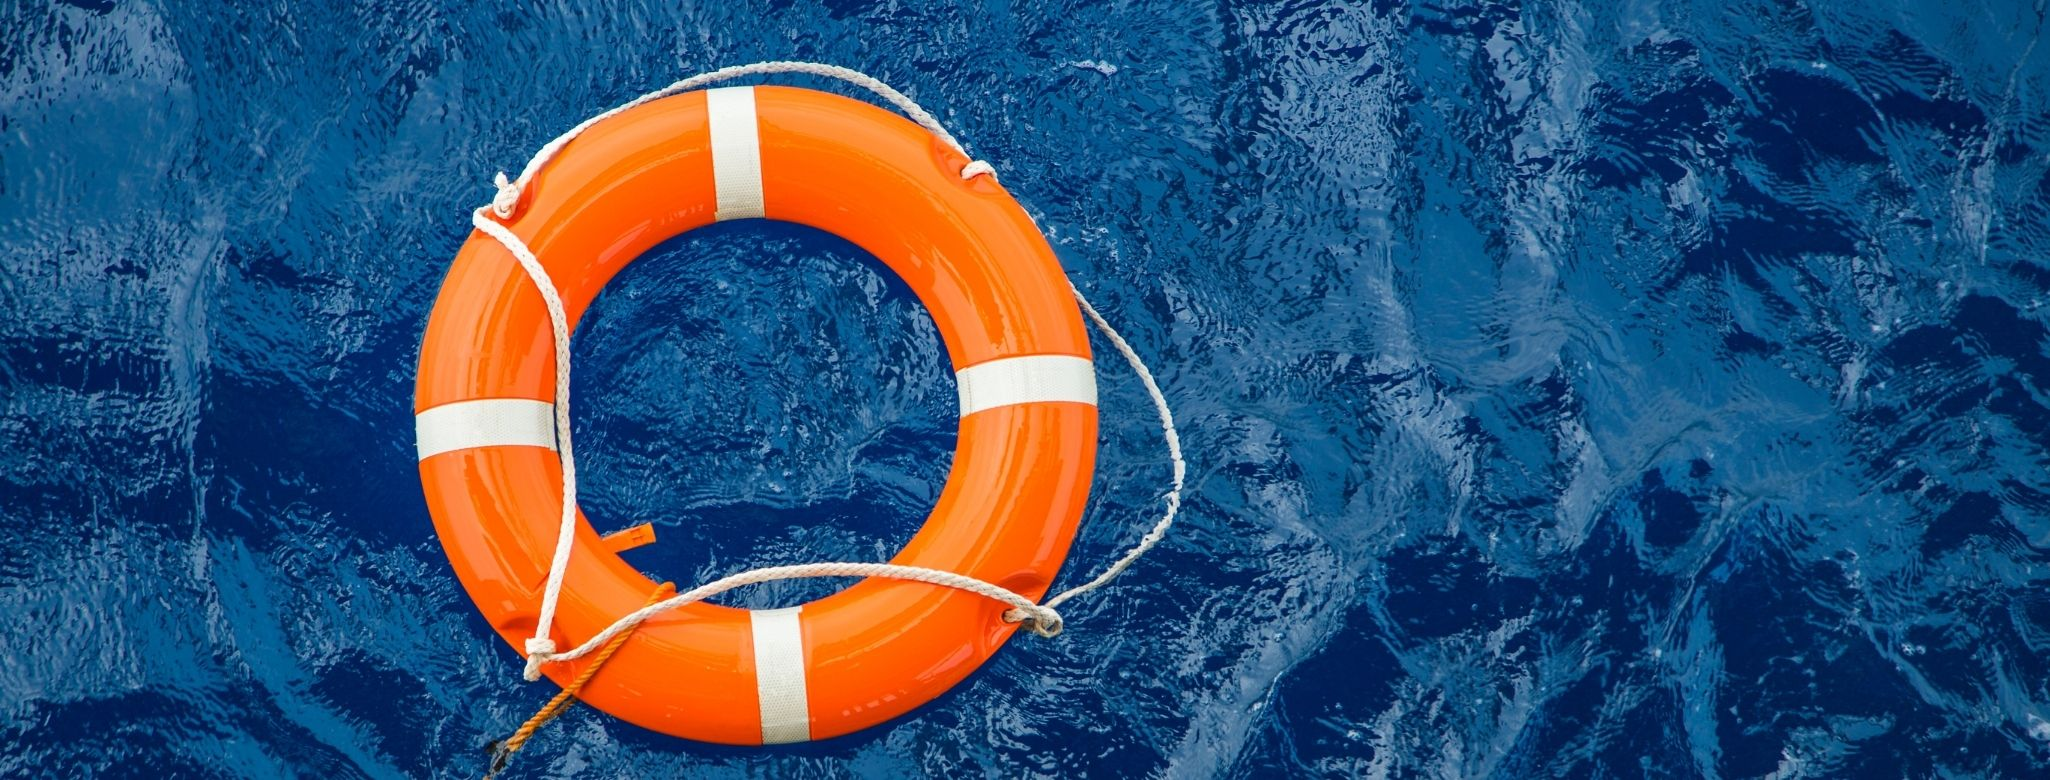 Yacht-Pool cancellation insurance